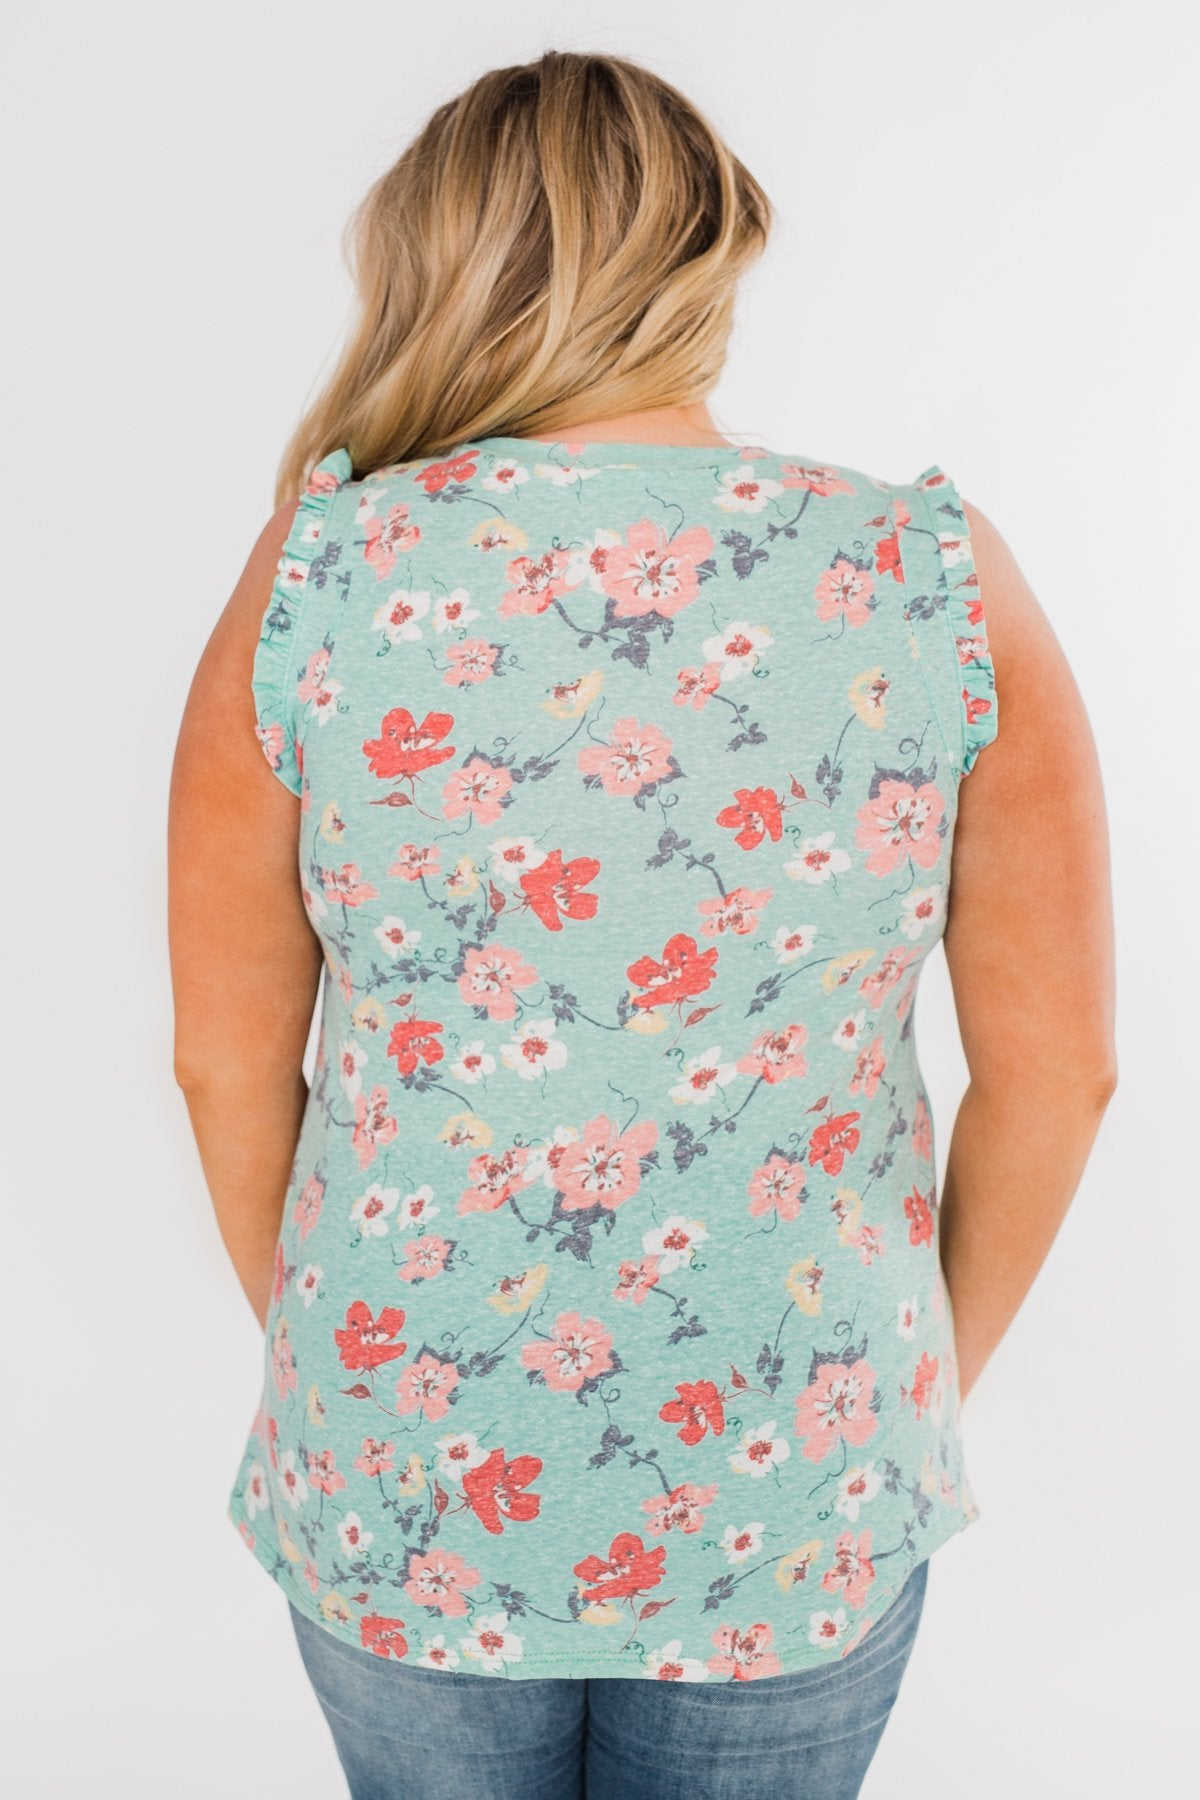 Sunny Day Picnic Ruffle Floral Top- Light Blue